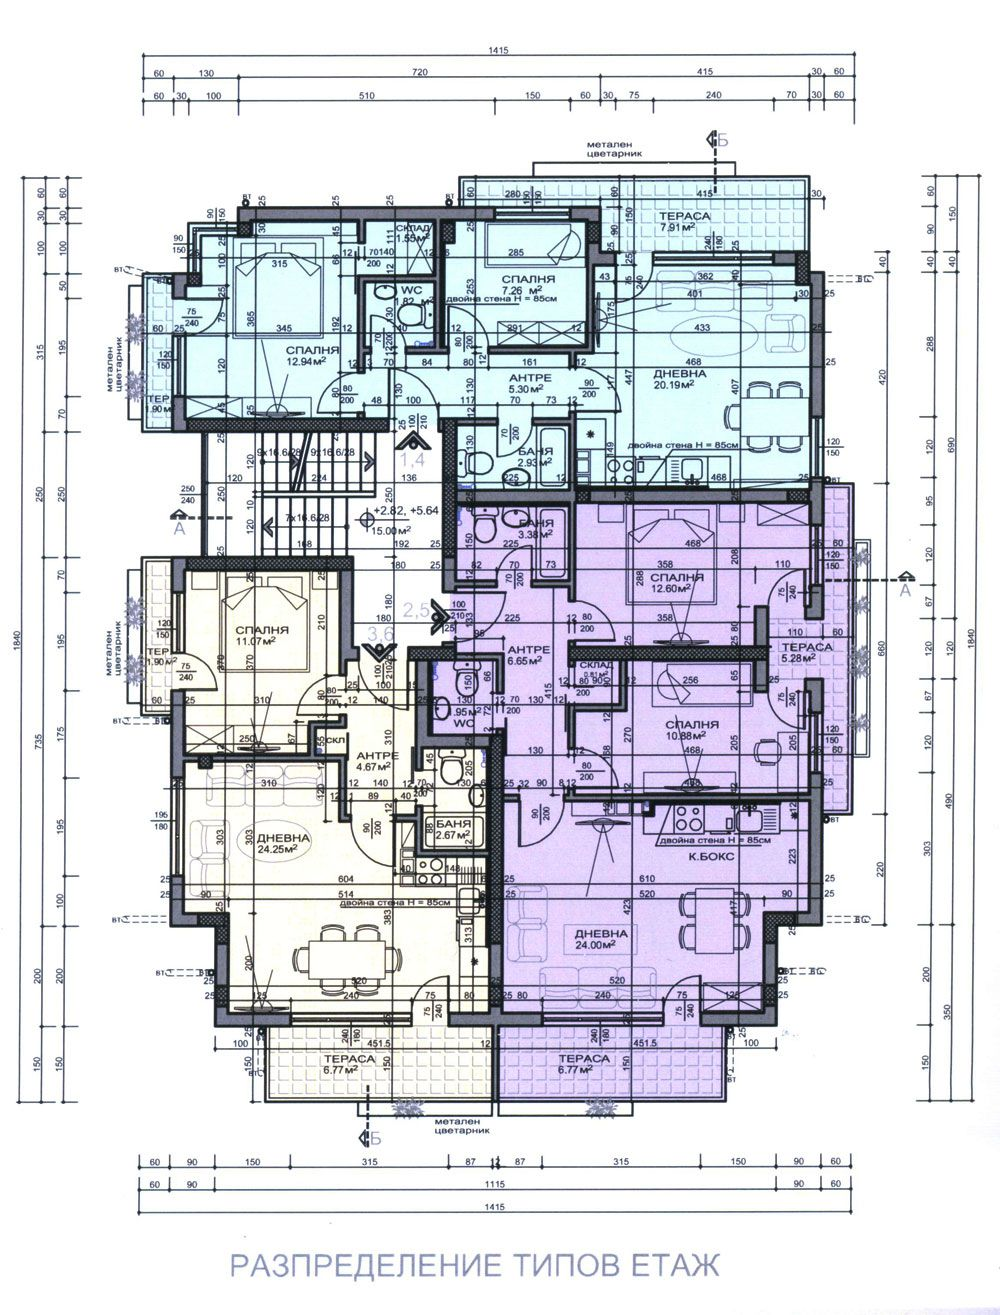 Residential building 1220 sofia residential district for Residential building plans dwg